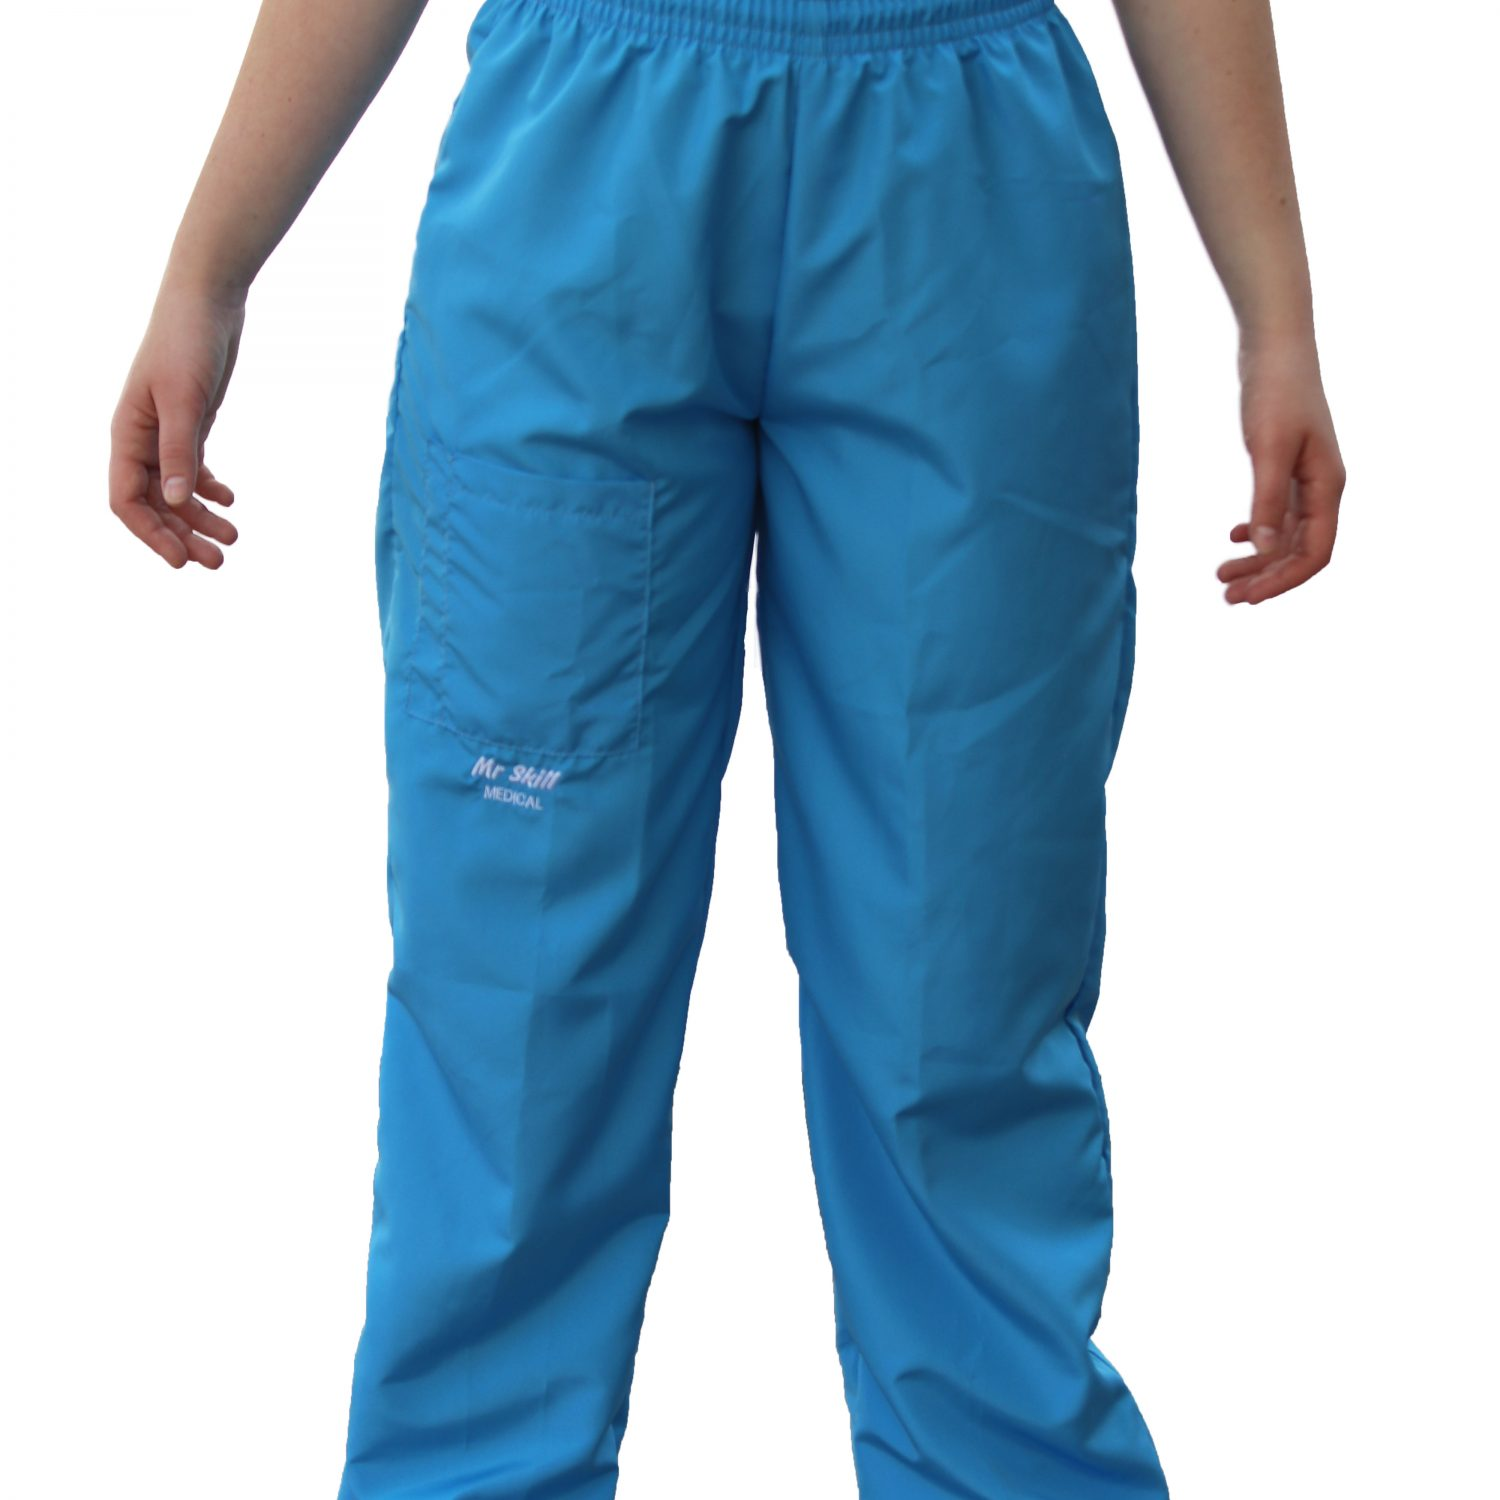 Medical Scrub Bottoms